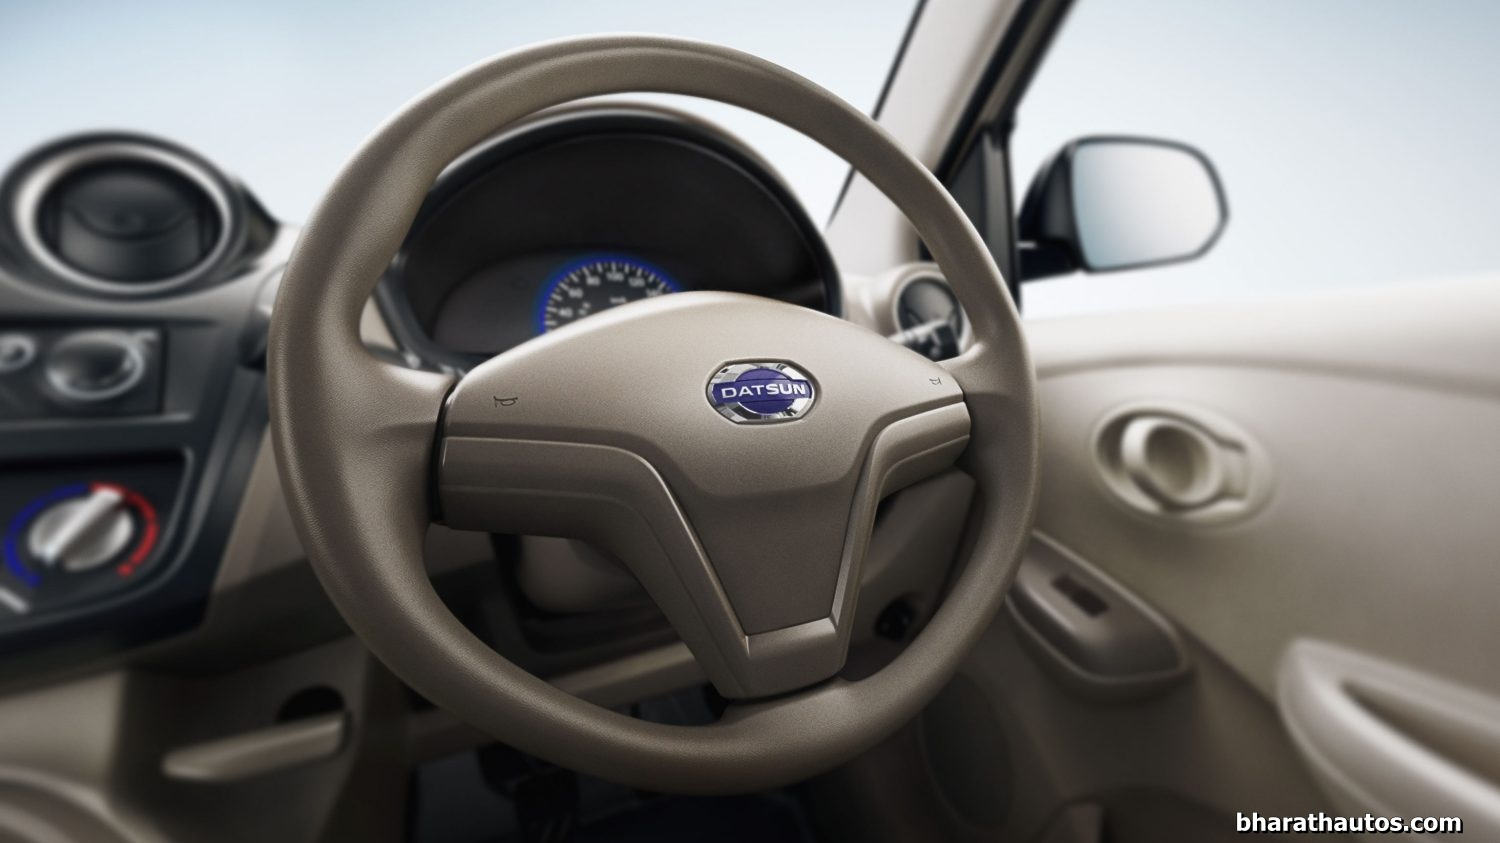 Datsun go 7 seater price in bangalore dating. Datsun go 7 seater price in bangalore dating.